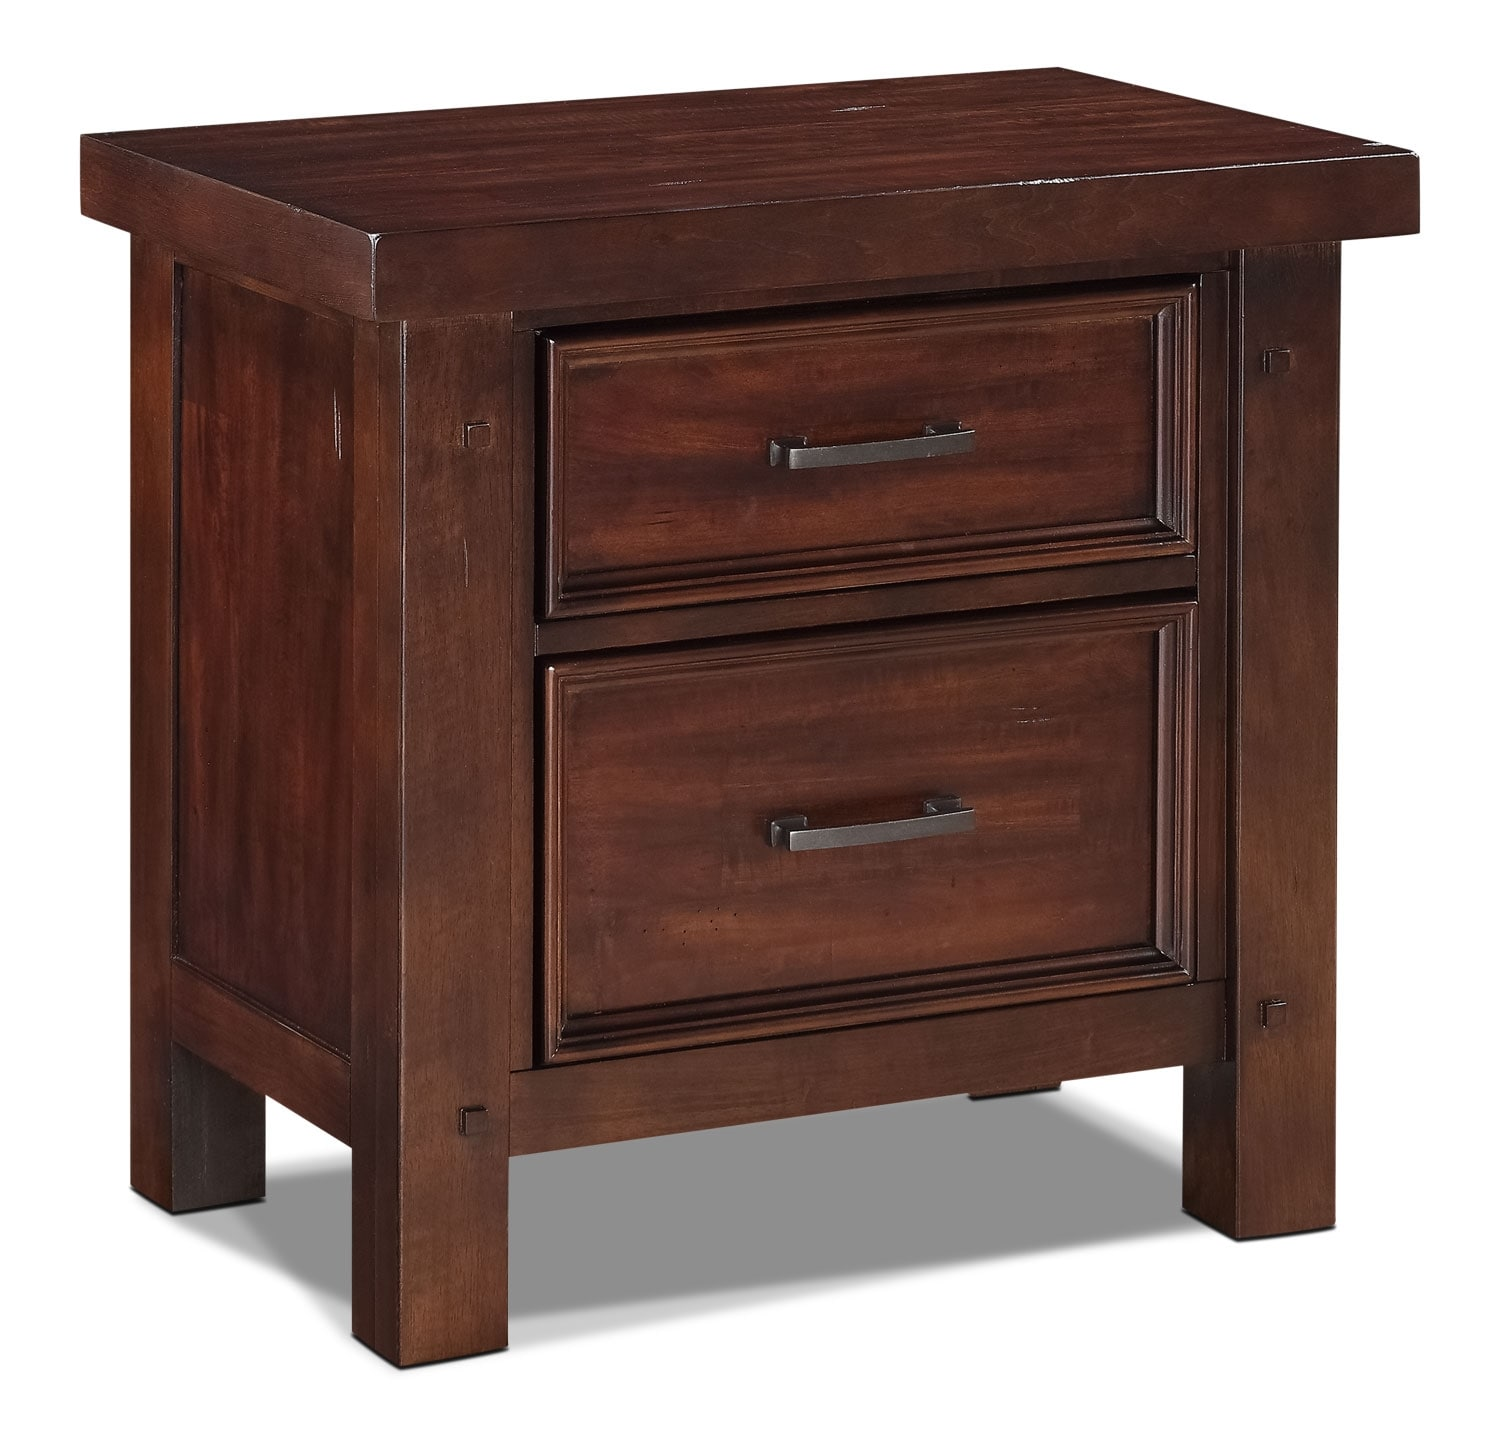 Kids Furniture - Sonoma Youth Nightstand